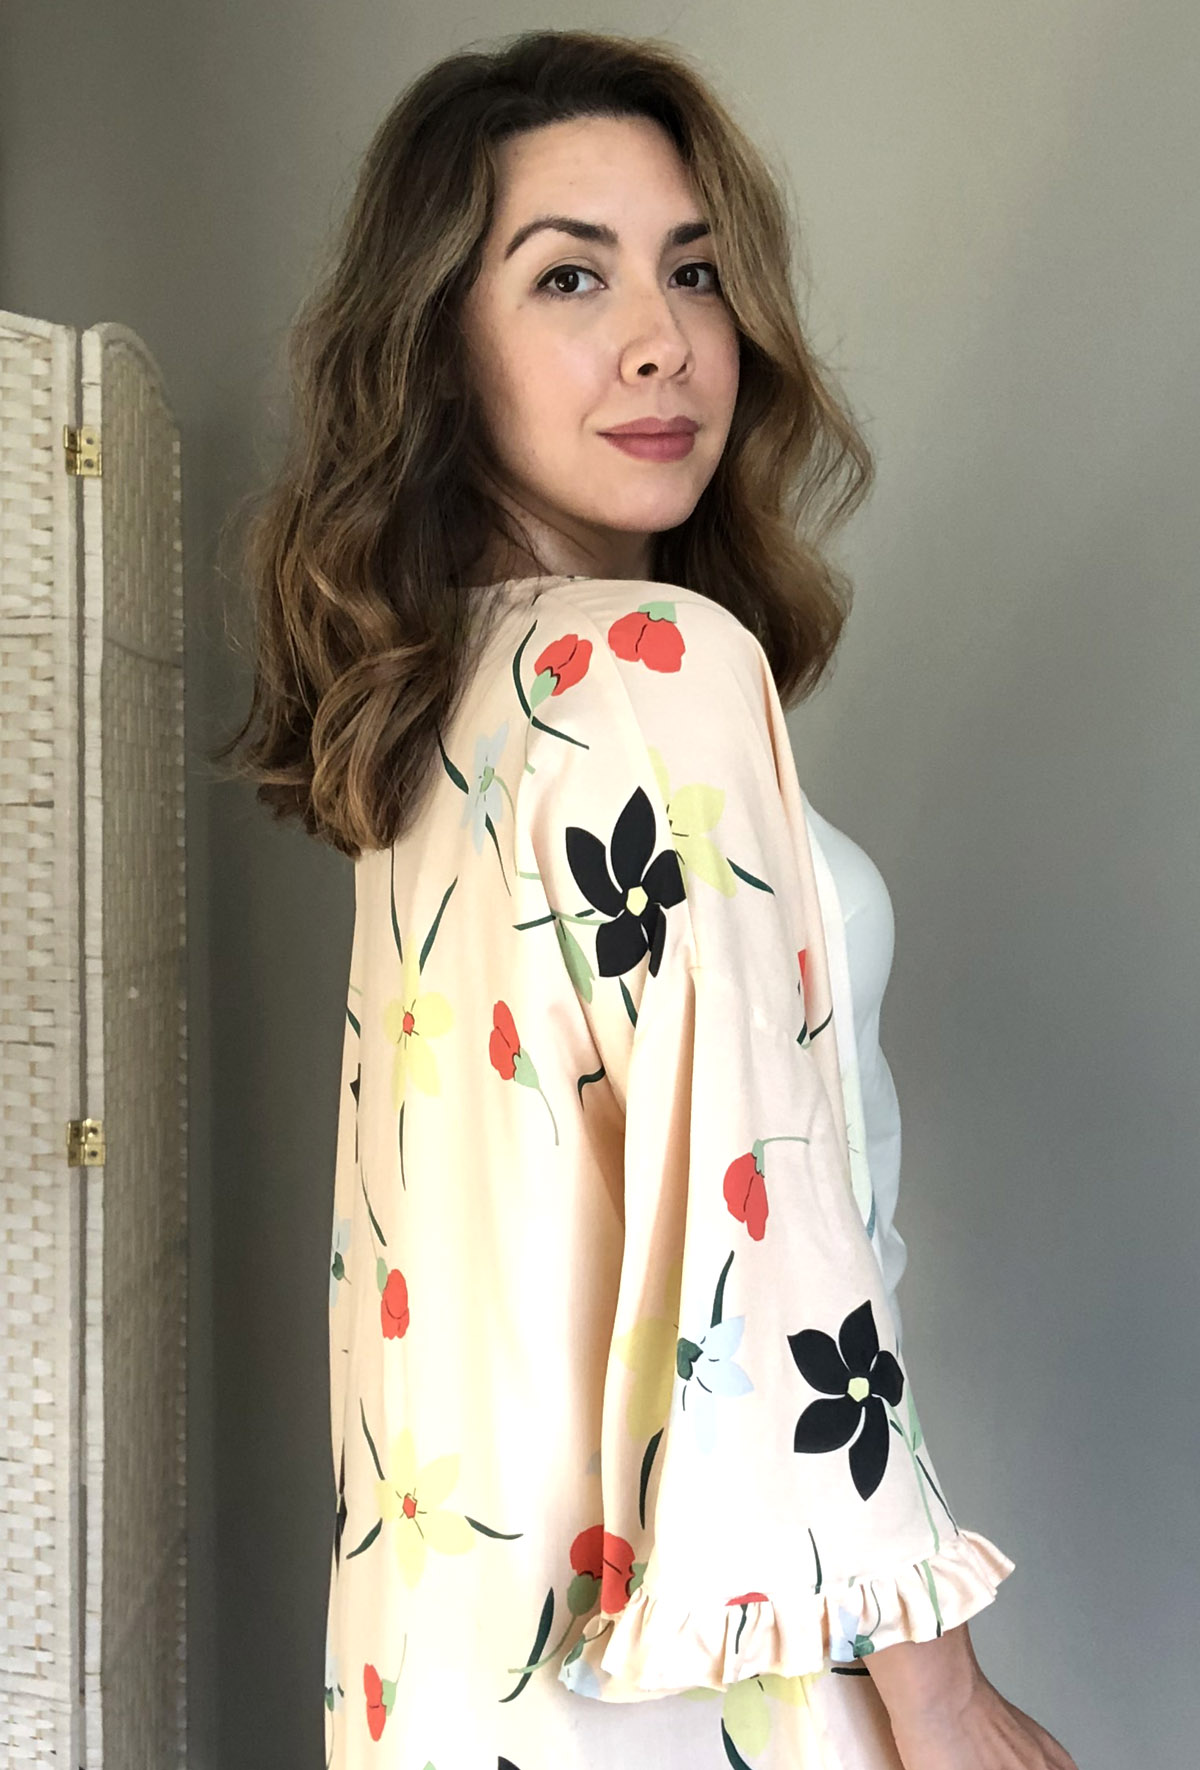 A woman with medium skin tone, brown eyes, and brown wavy hair looks over her right shoulder. She is wearing a light pink dress with a floral motif and the end of the sleeve has a short ruffle.